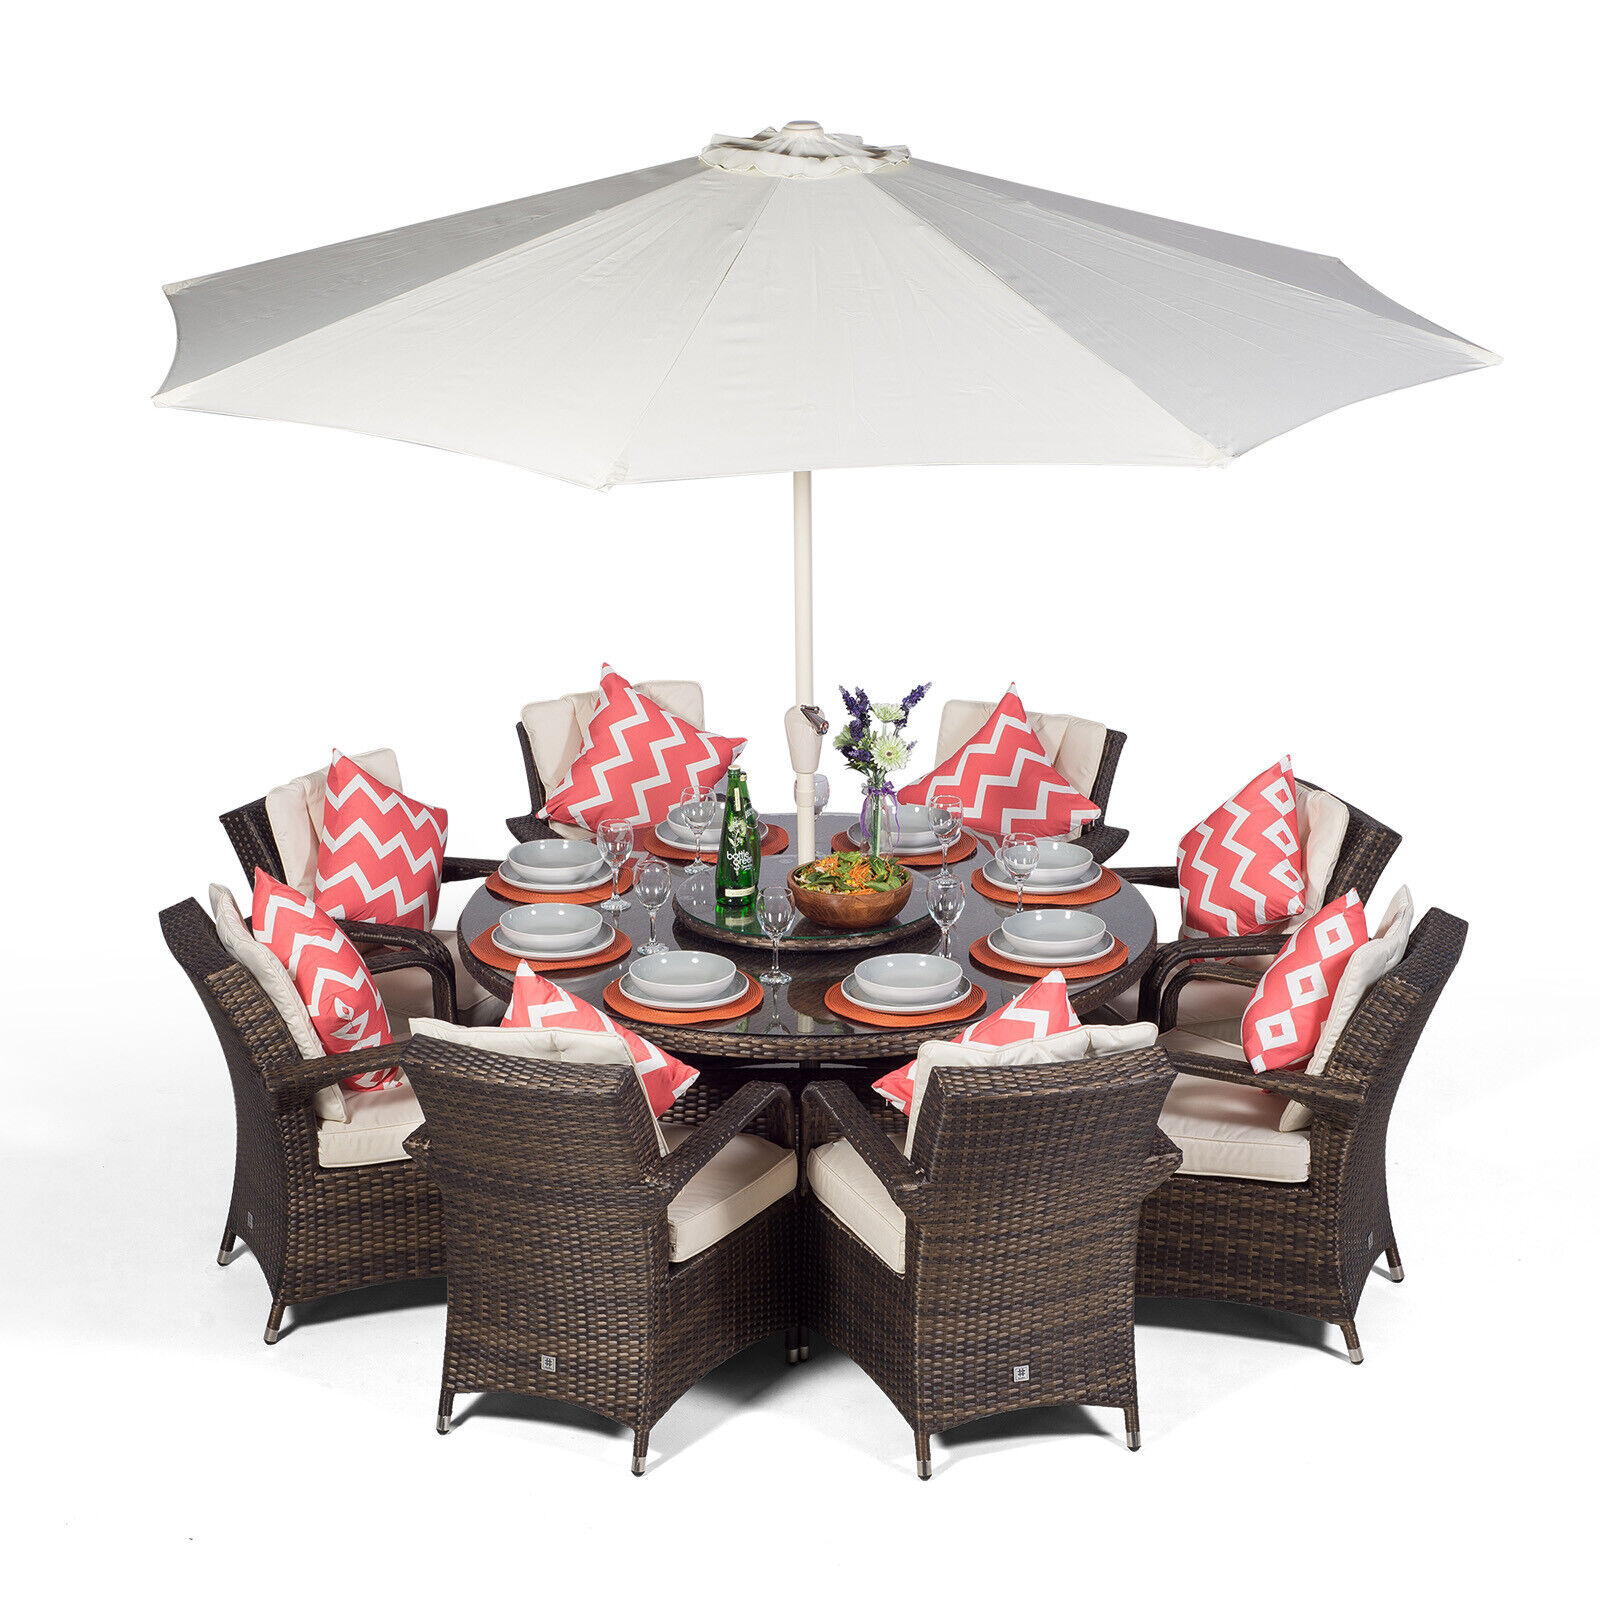 details about arizona 8 seater round rattan garden dining table chairs set patio furniture